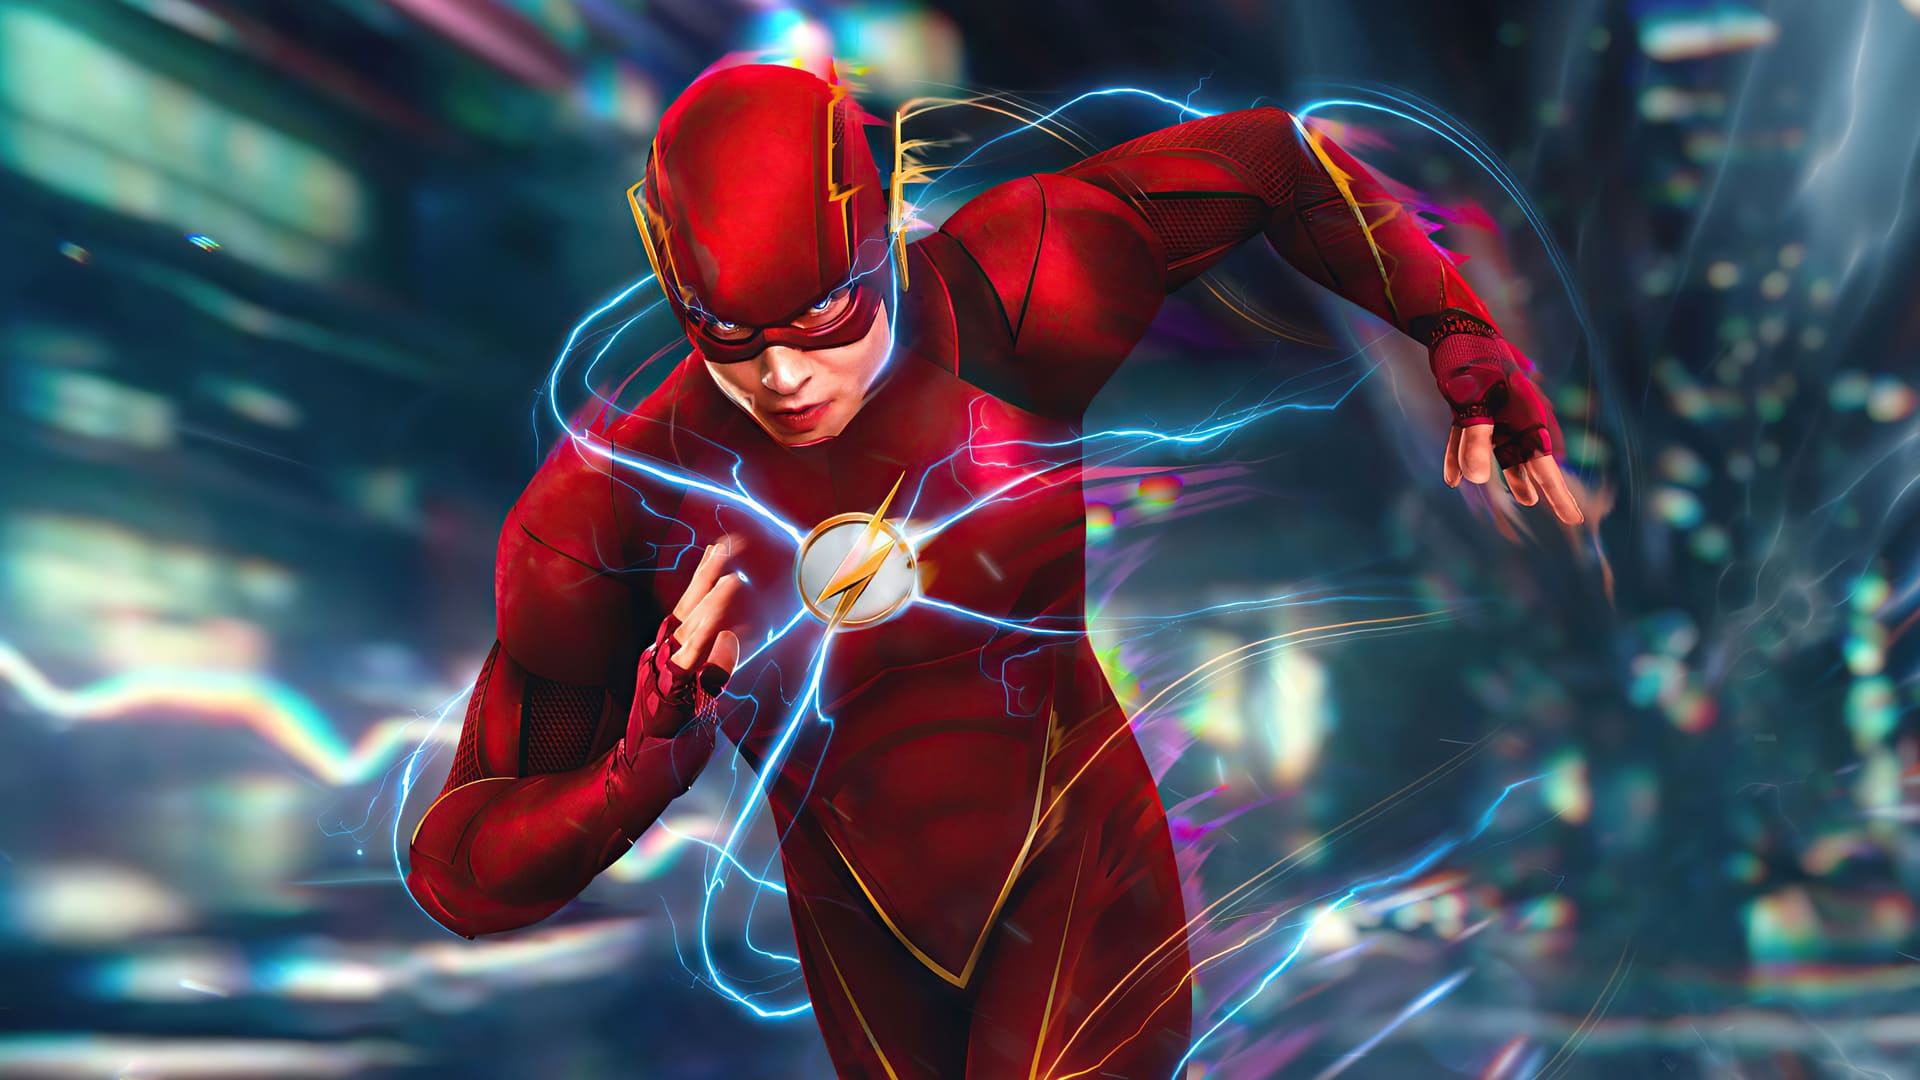 Top 75 The Flash Wallpapers ( 4k + HD )